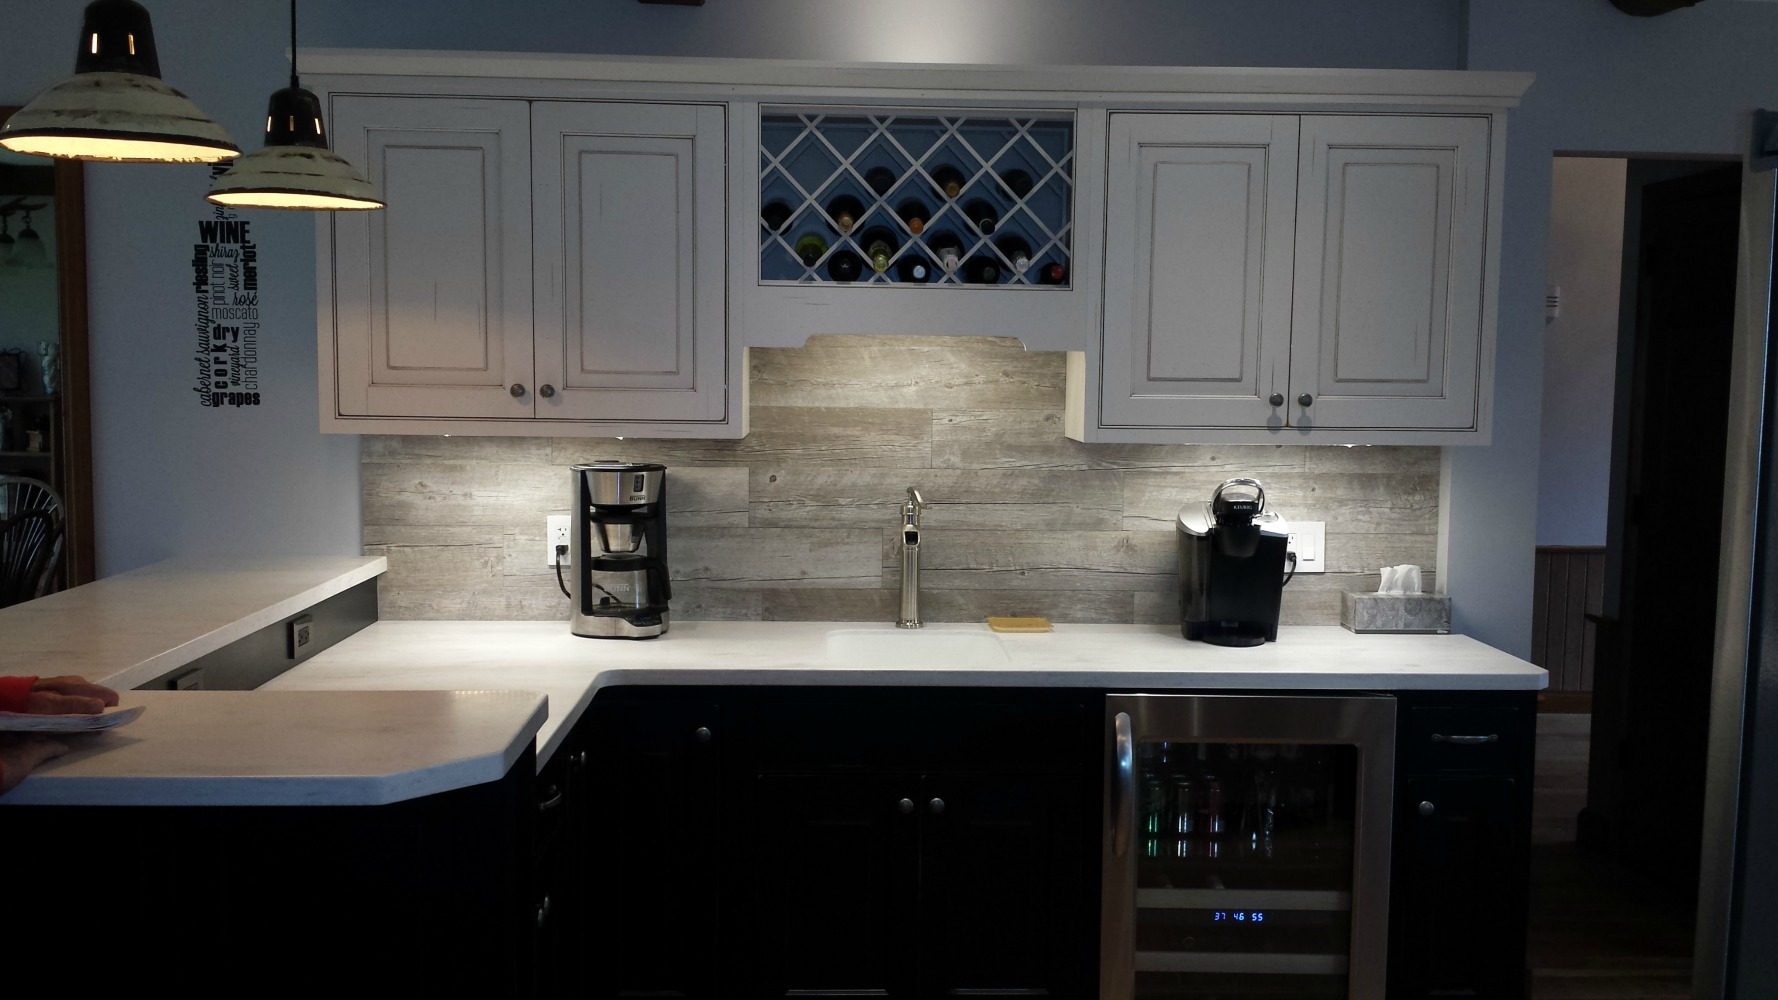 Cavins Kitchen Village Of Findlay OH | Kitchen Remodeling, Cabinet Refacing  And Countertops In Findlay And Hancock County